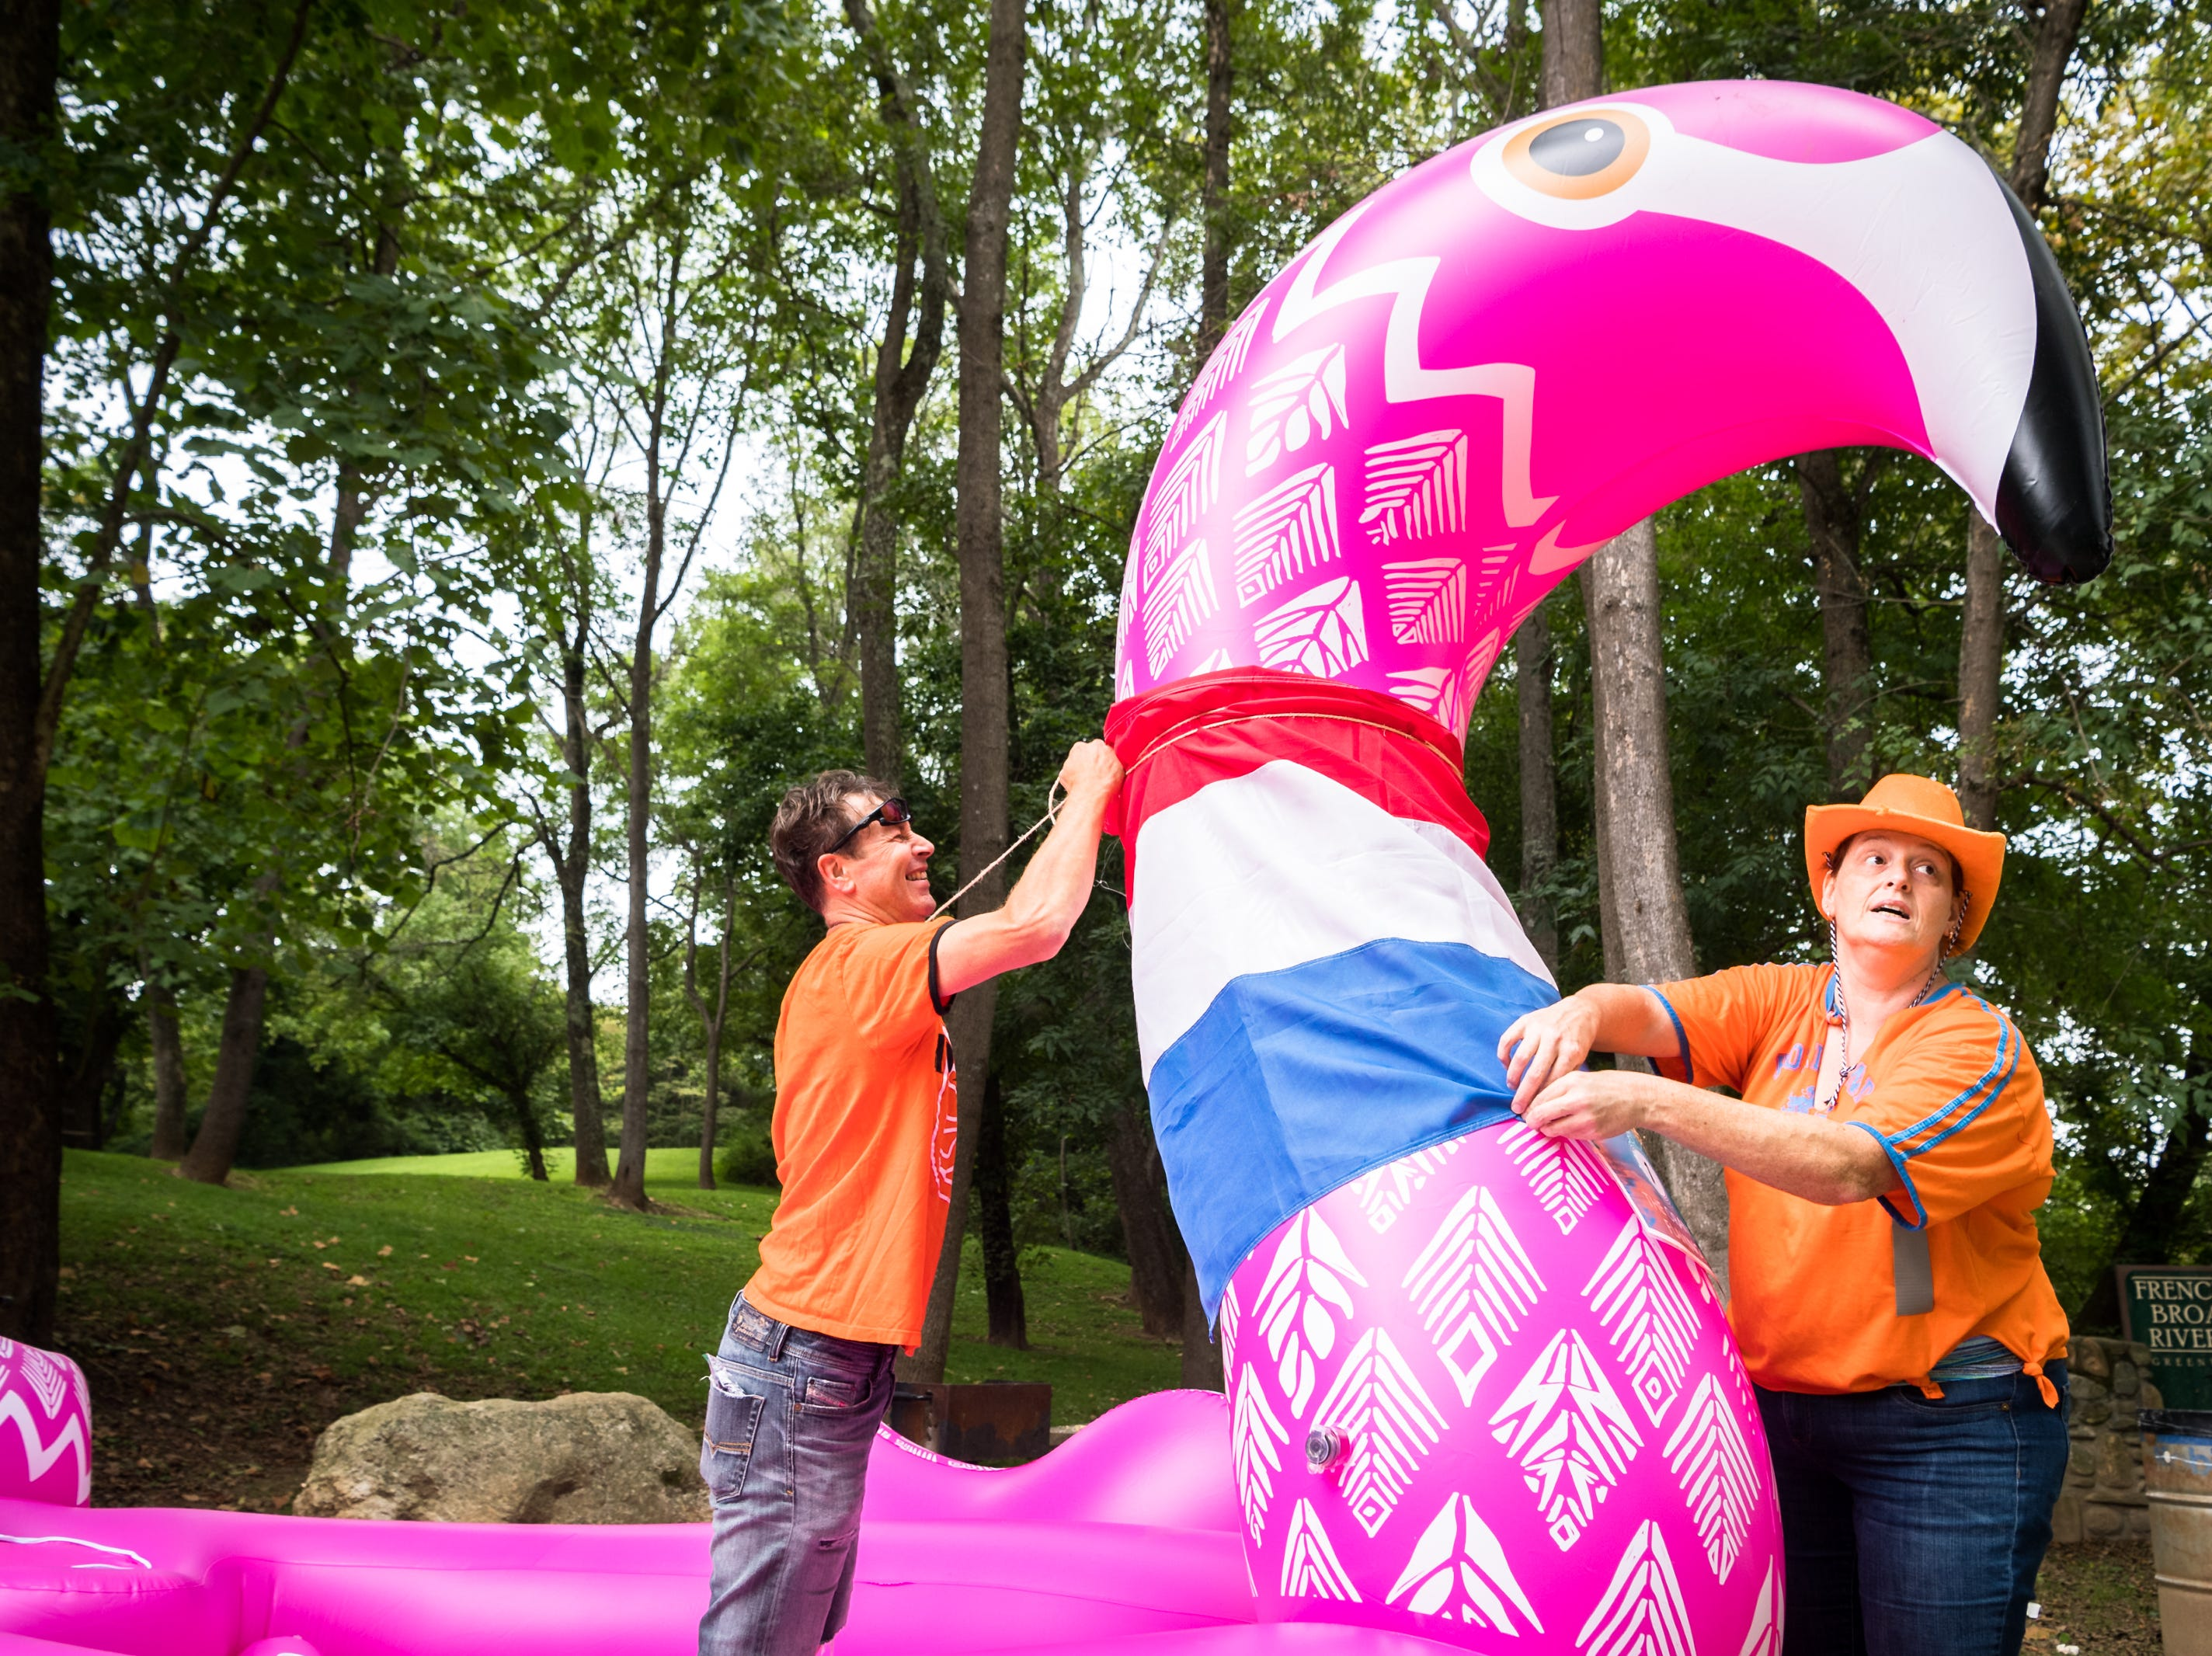 Marco Rozenbroek and Martine Rozenbroek, of Swannanoa, wrap the flag of the Netherlands around their giant flamingo raft before putting in to the French Broad River at Hominy Creek River Park as part of the Anything that Floats parade Saturday, August 18, 2018.